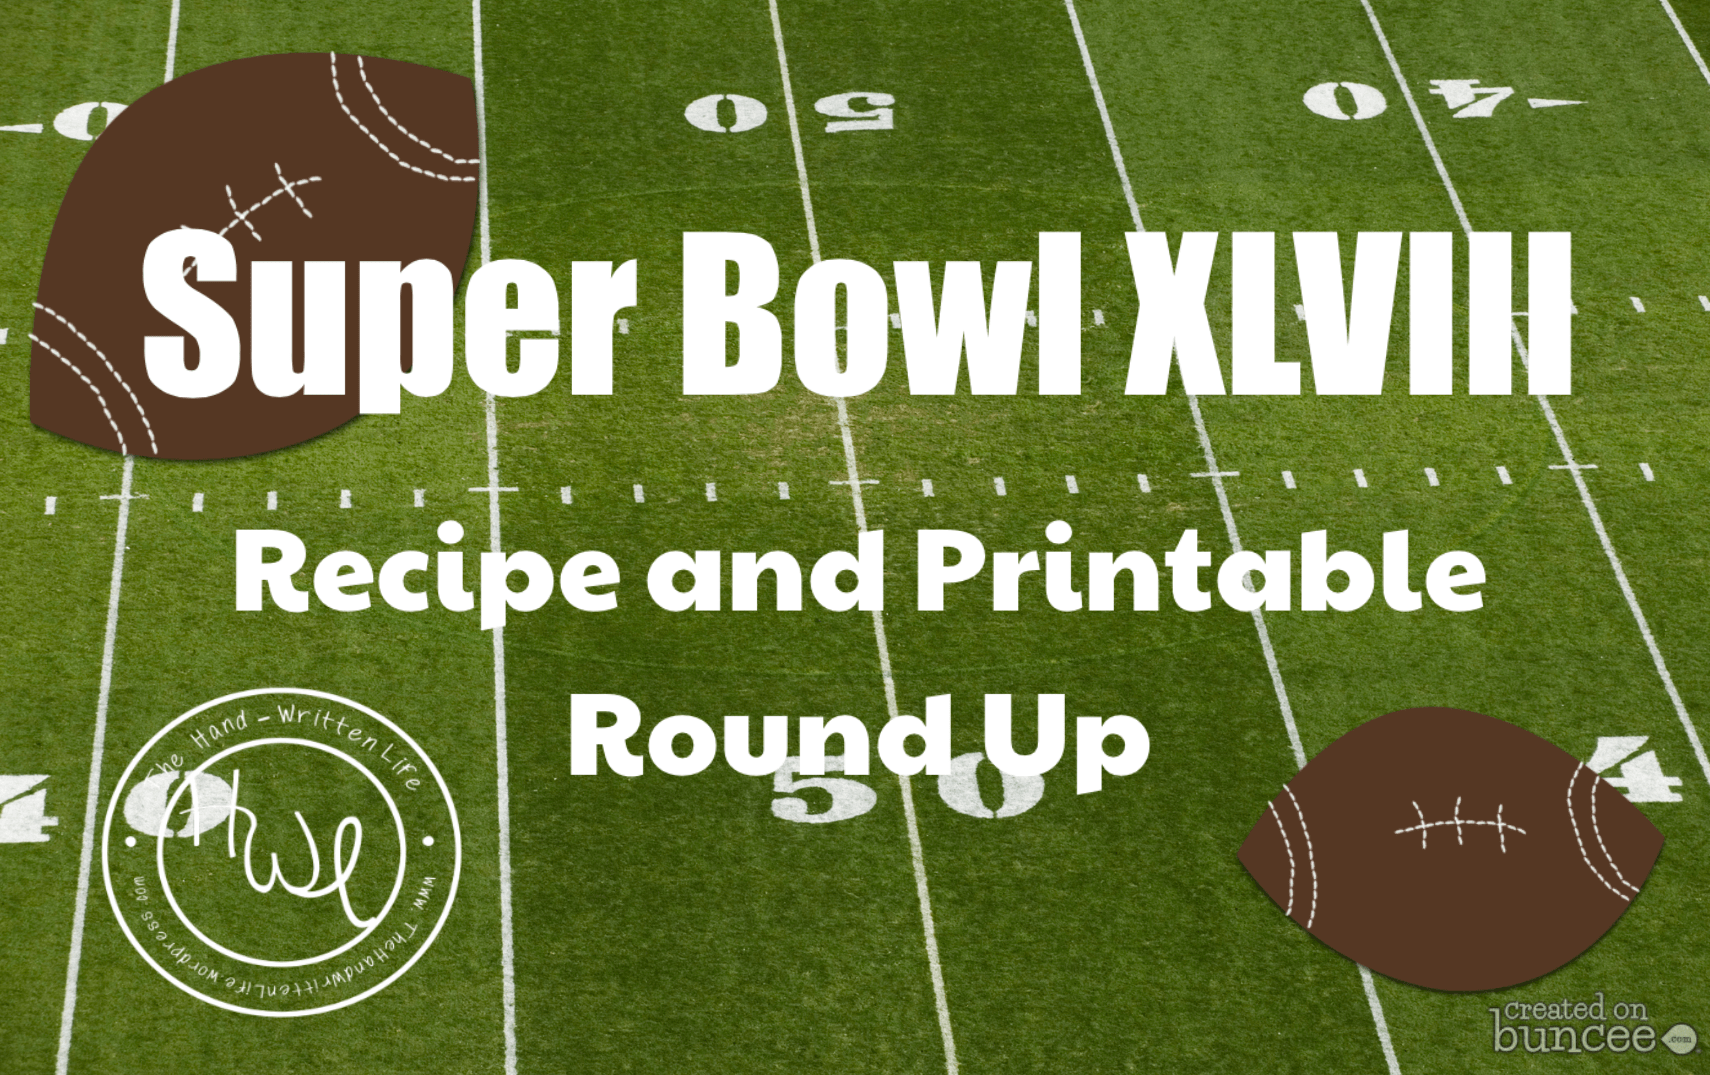 Super Bowl Xlviii Recipe And Printable Round Up